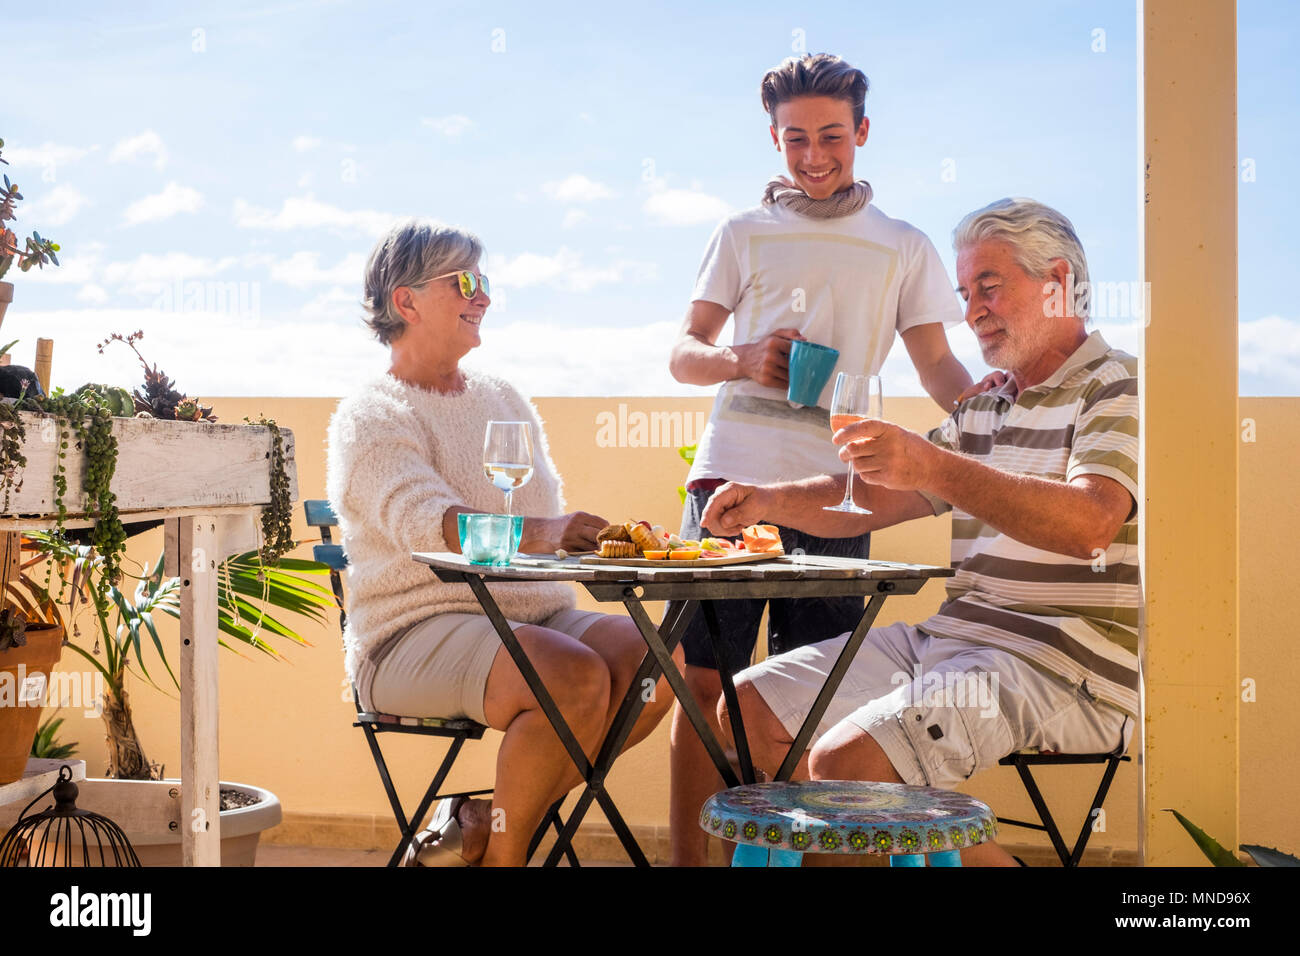 family of different ages with grandparents and grandson spend free time on the terrace eating and drinking on an outdoor terrace in summer - Stock Image